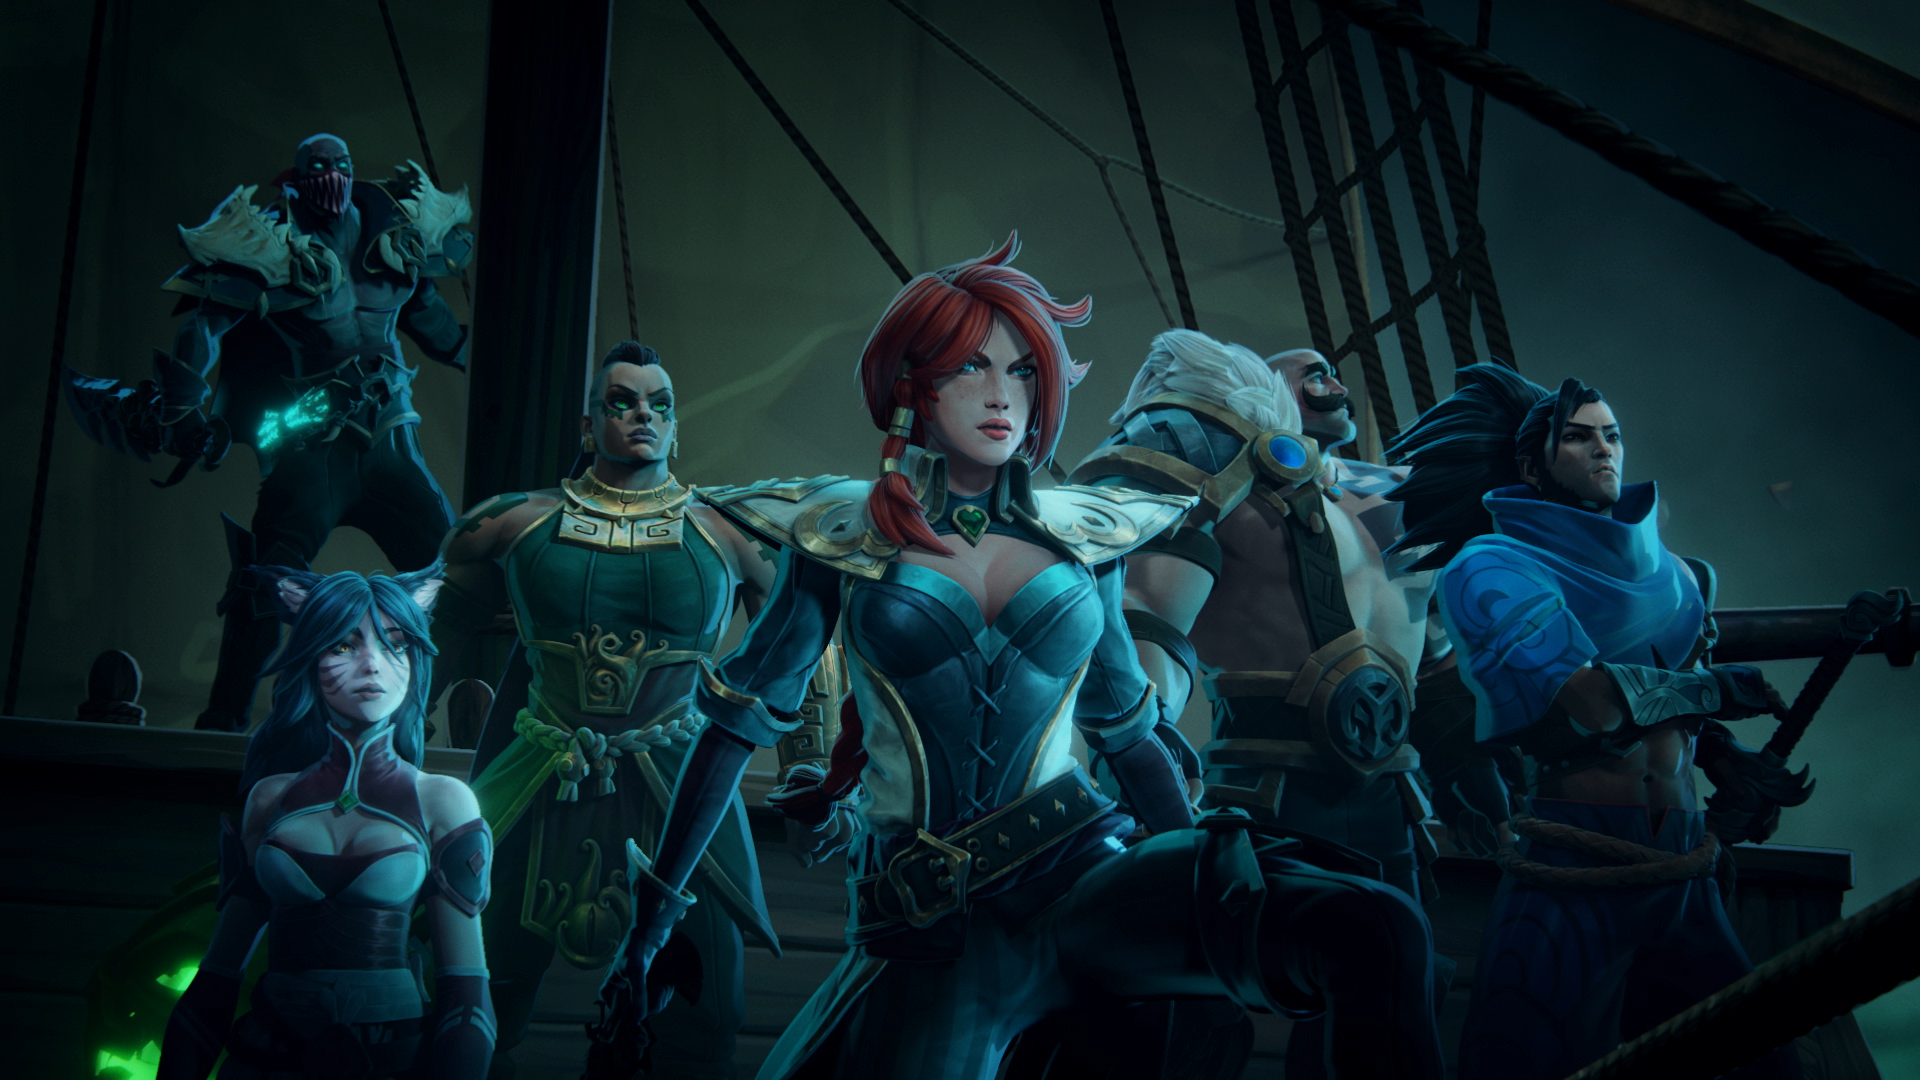 Several League of Legends champions stand on a boat in an eerie area